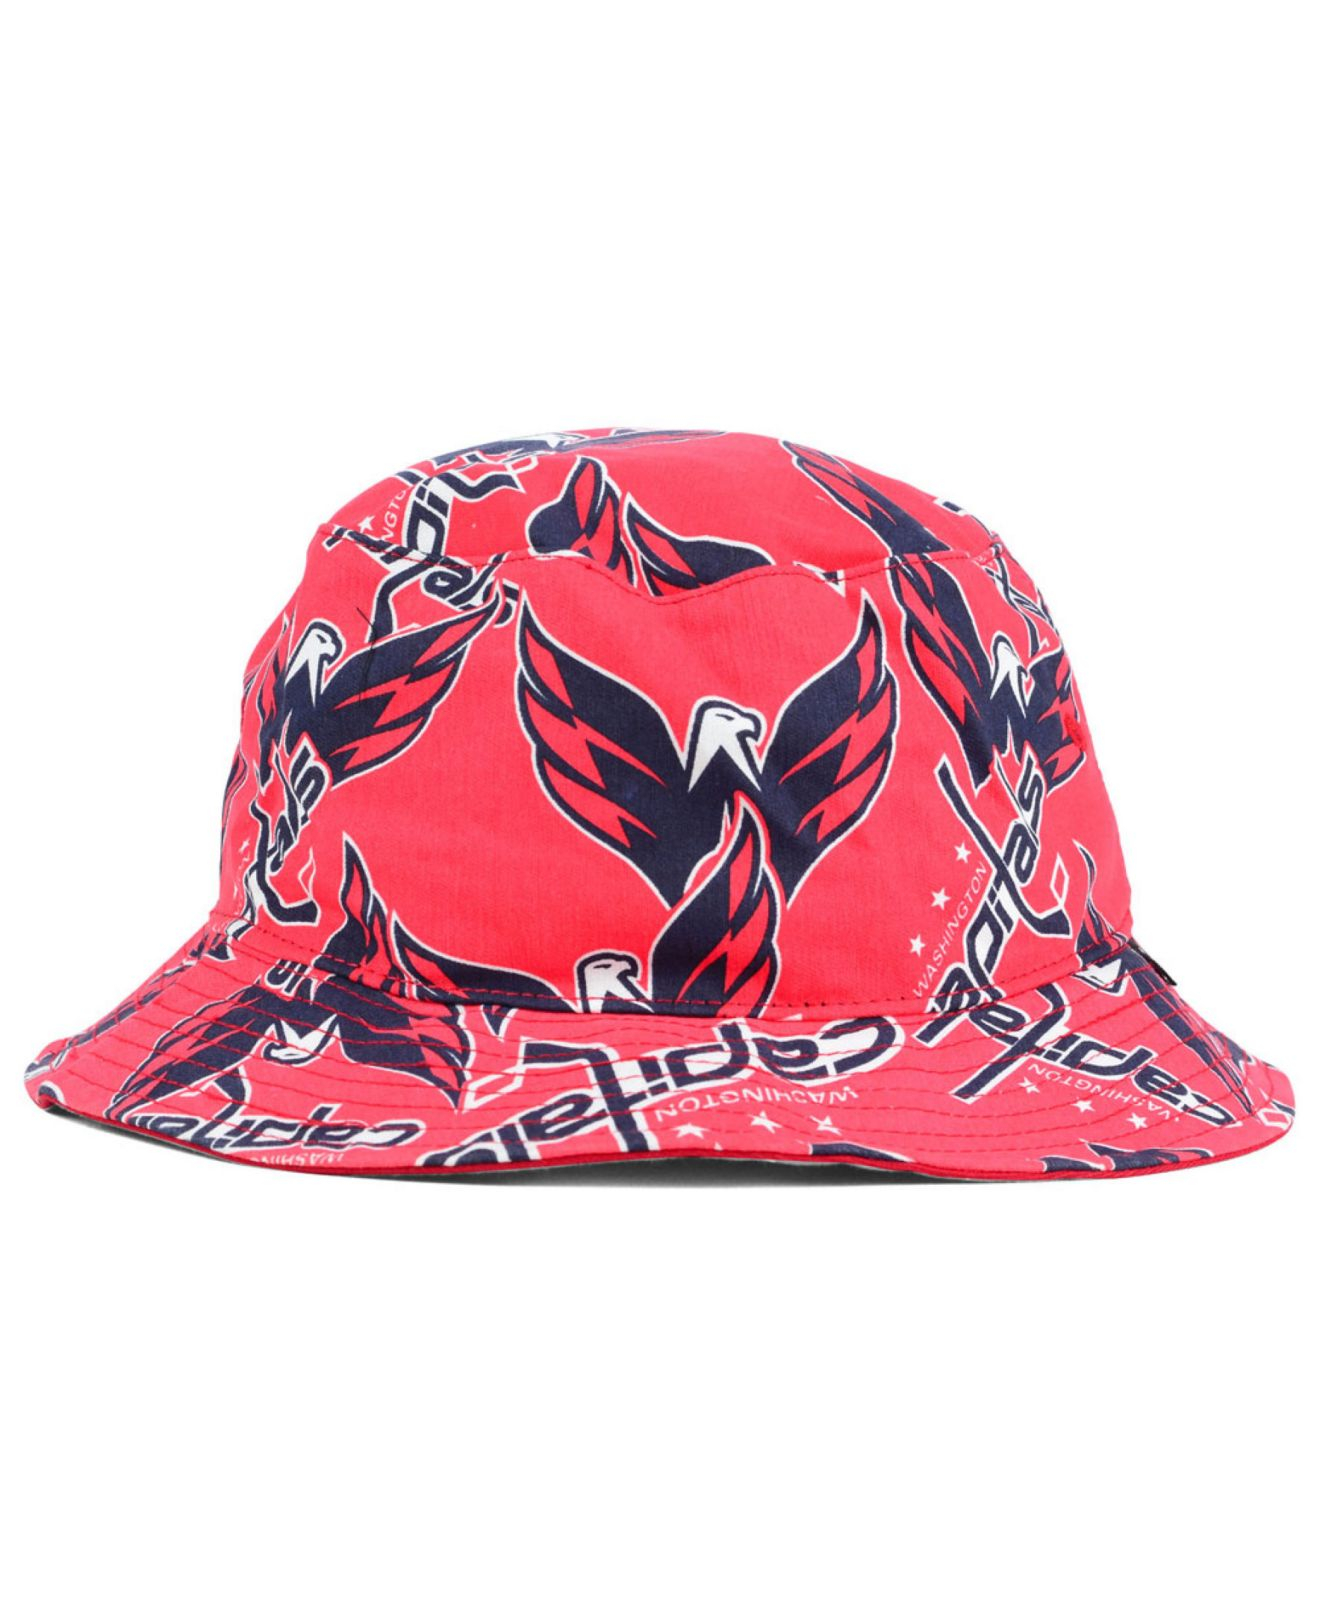 496104d4df4 uk lyst 47 brand washington capitals bucket hat in pink 1424e 2ed4e